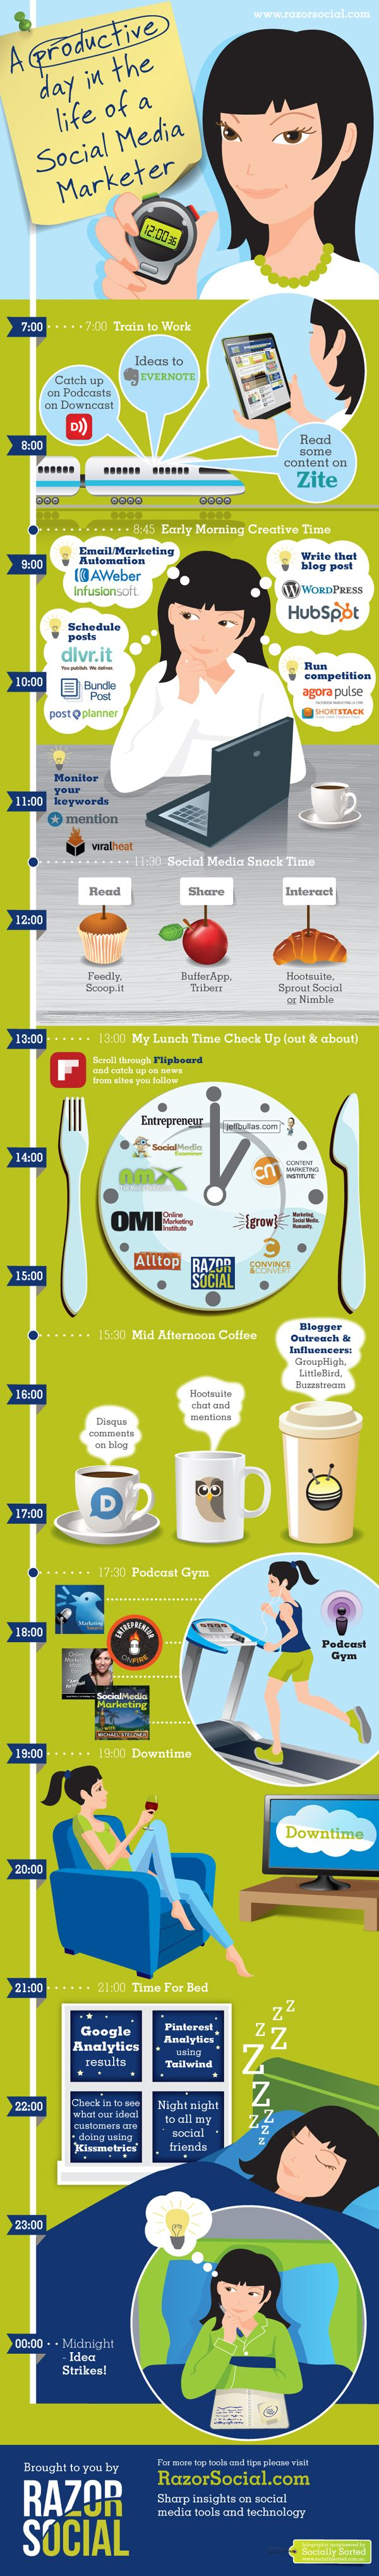 A Day in the Life of a Social Media Marketer - #Infographic via #BornToBeSocial